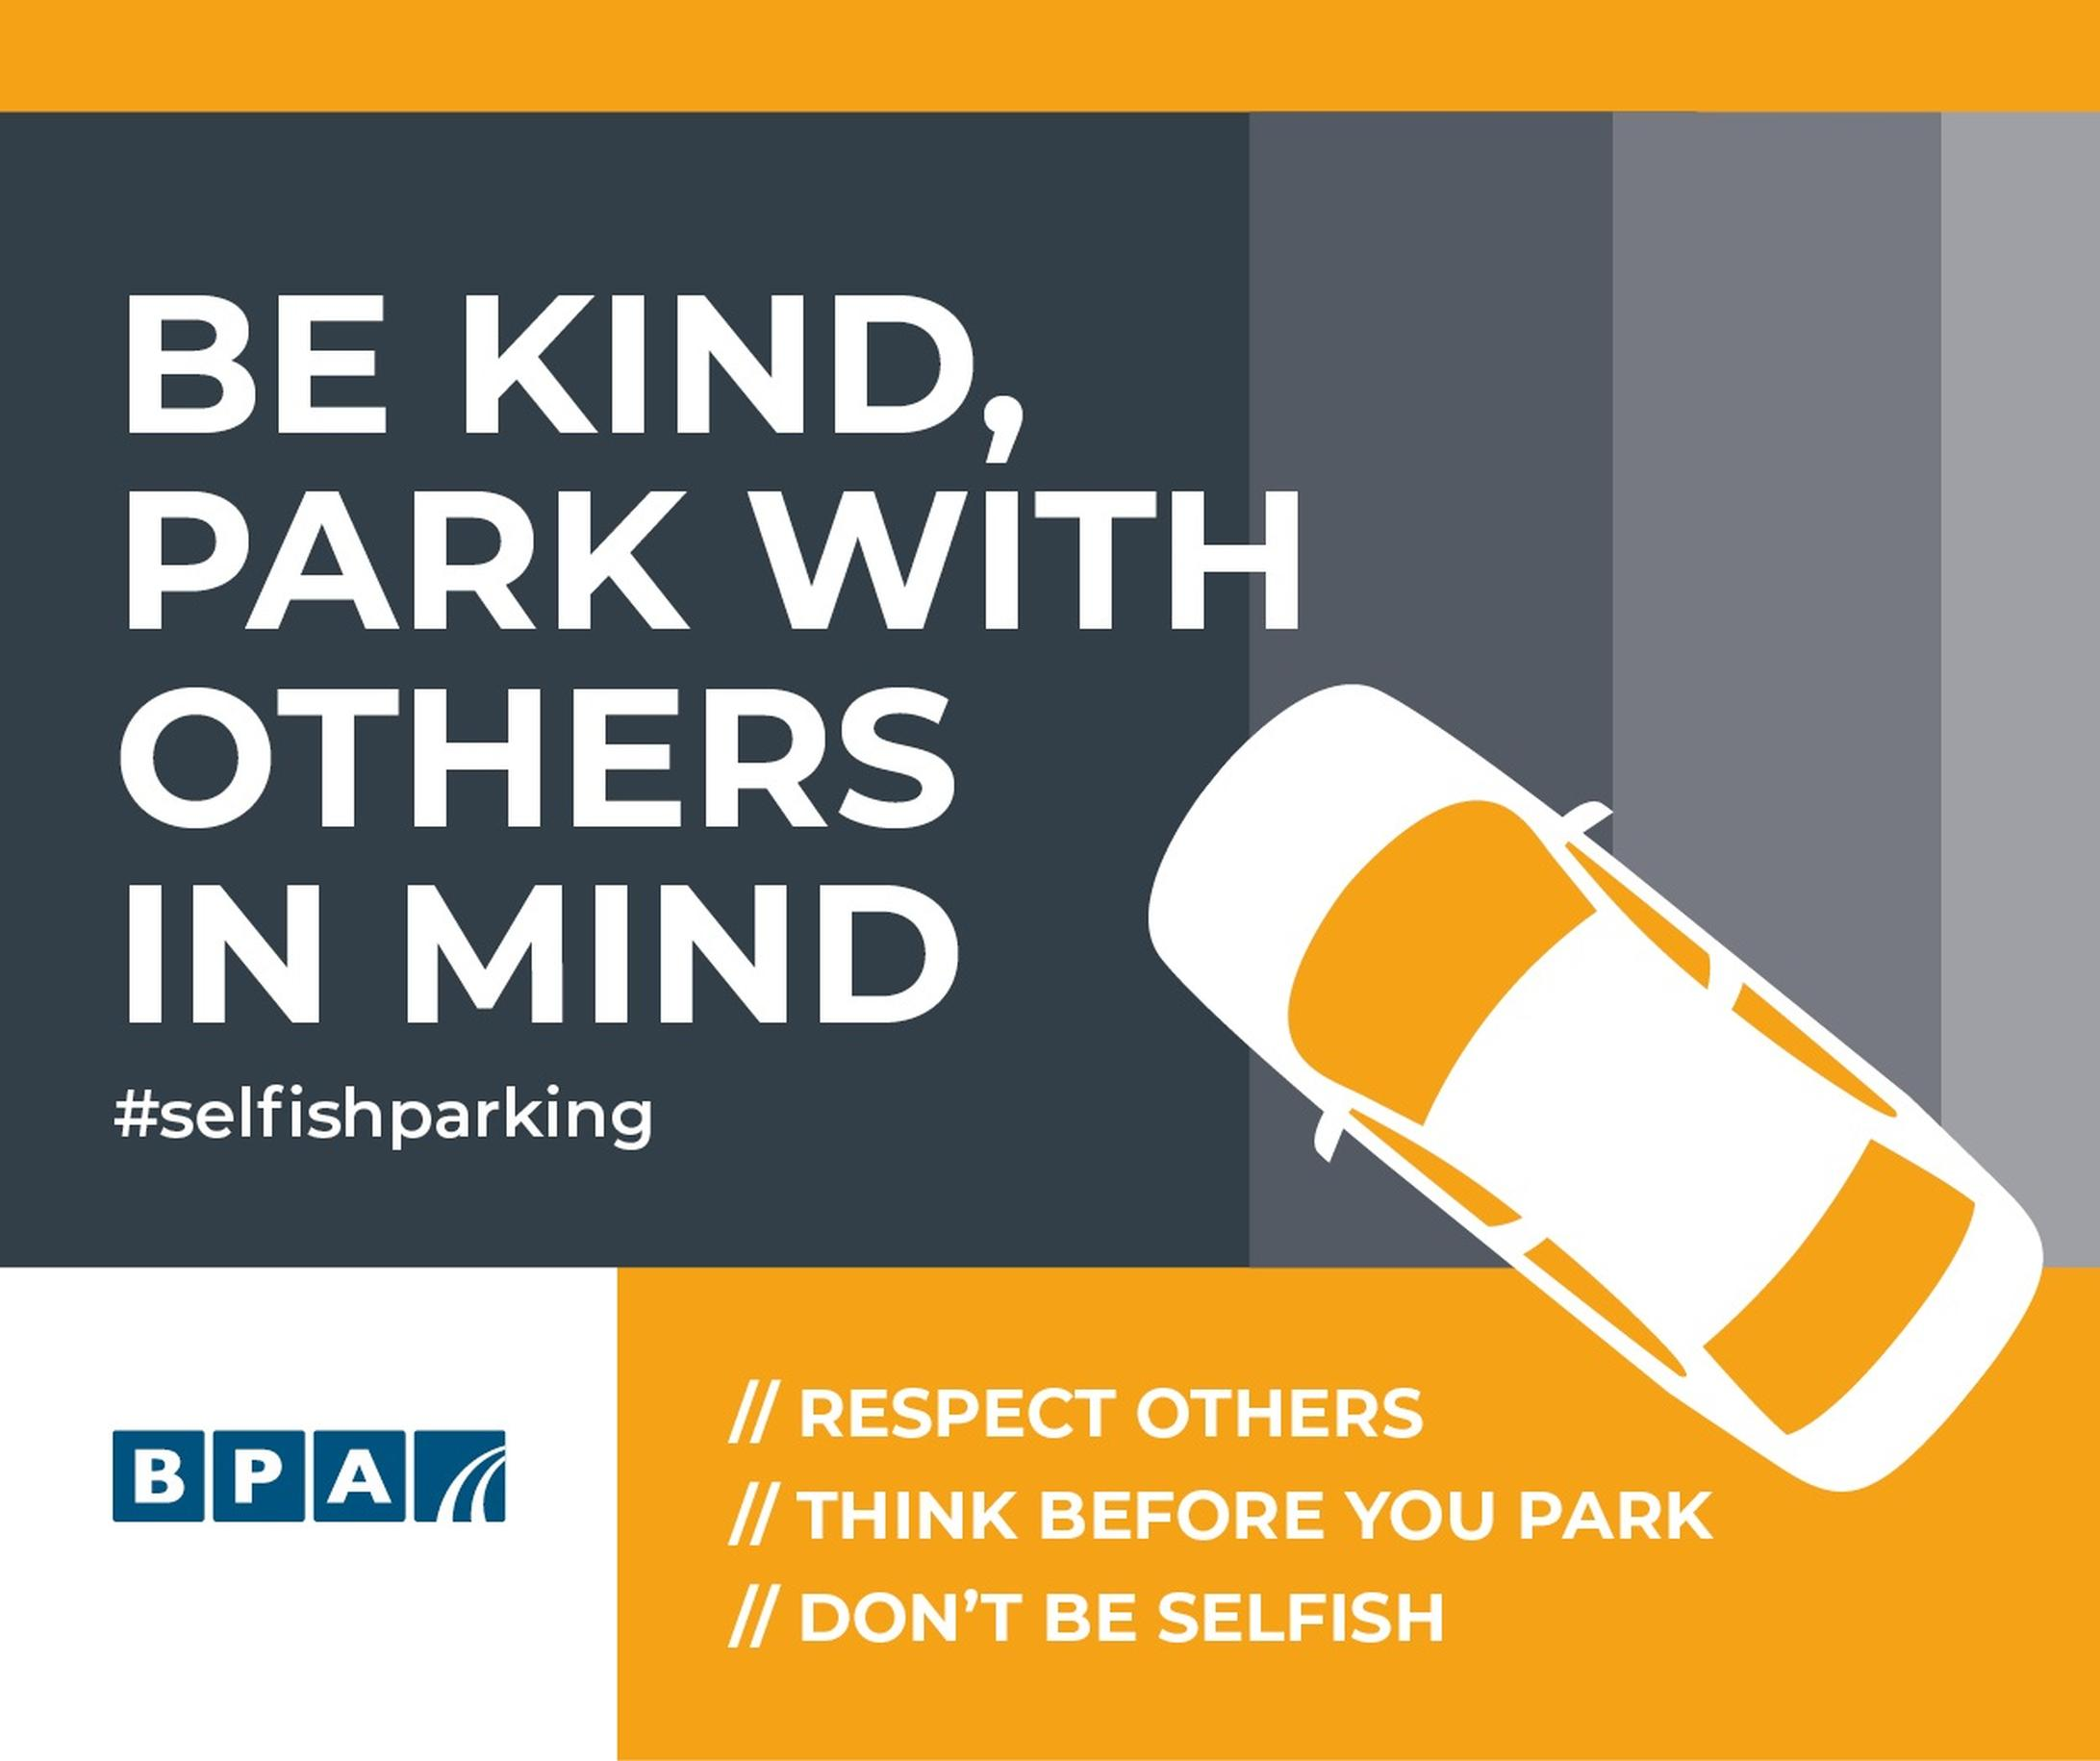 BPA asks motorists to be kind and respect others when parking